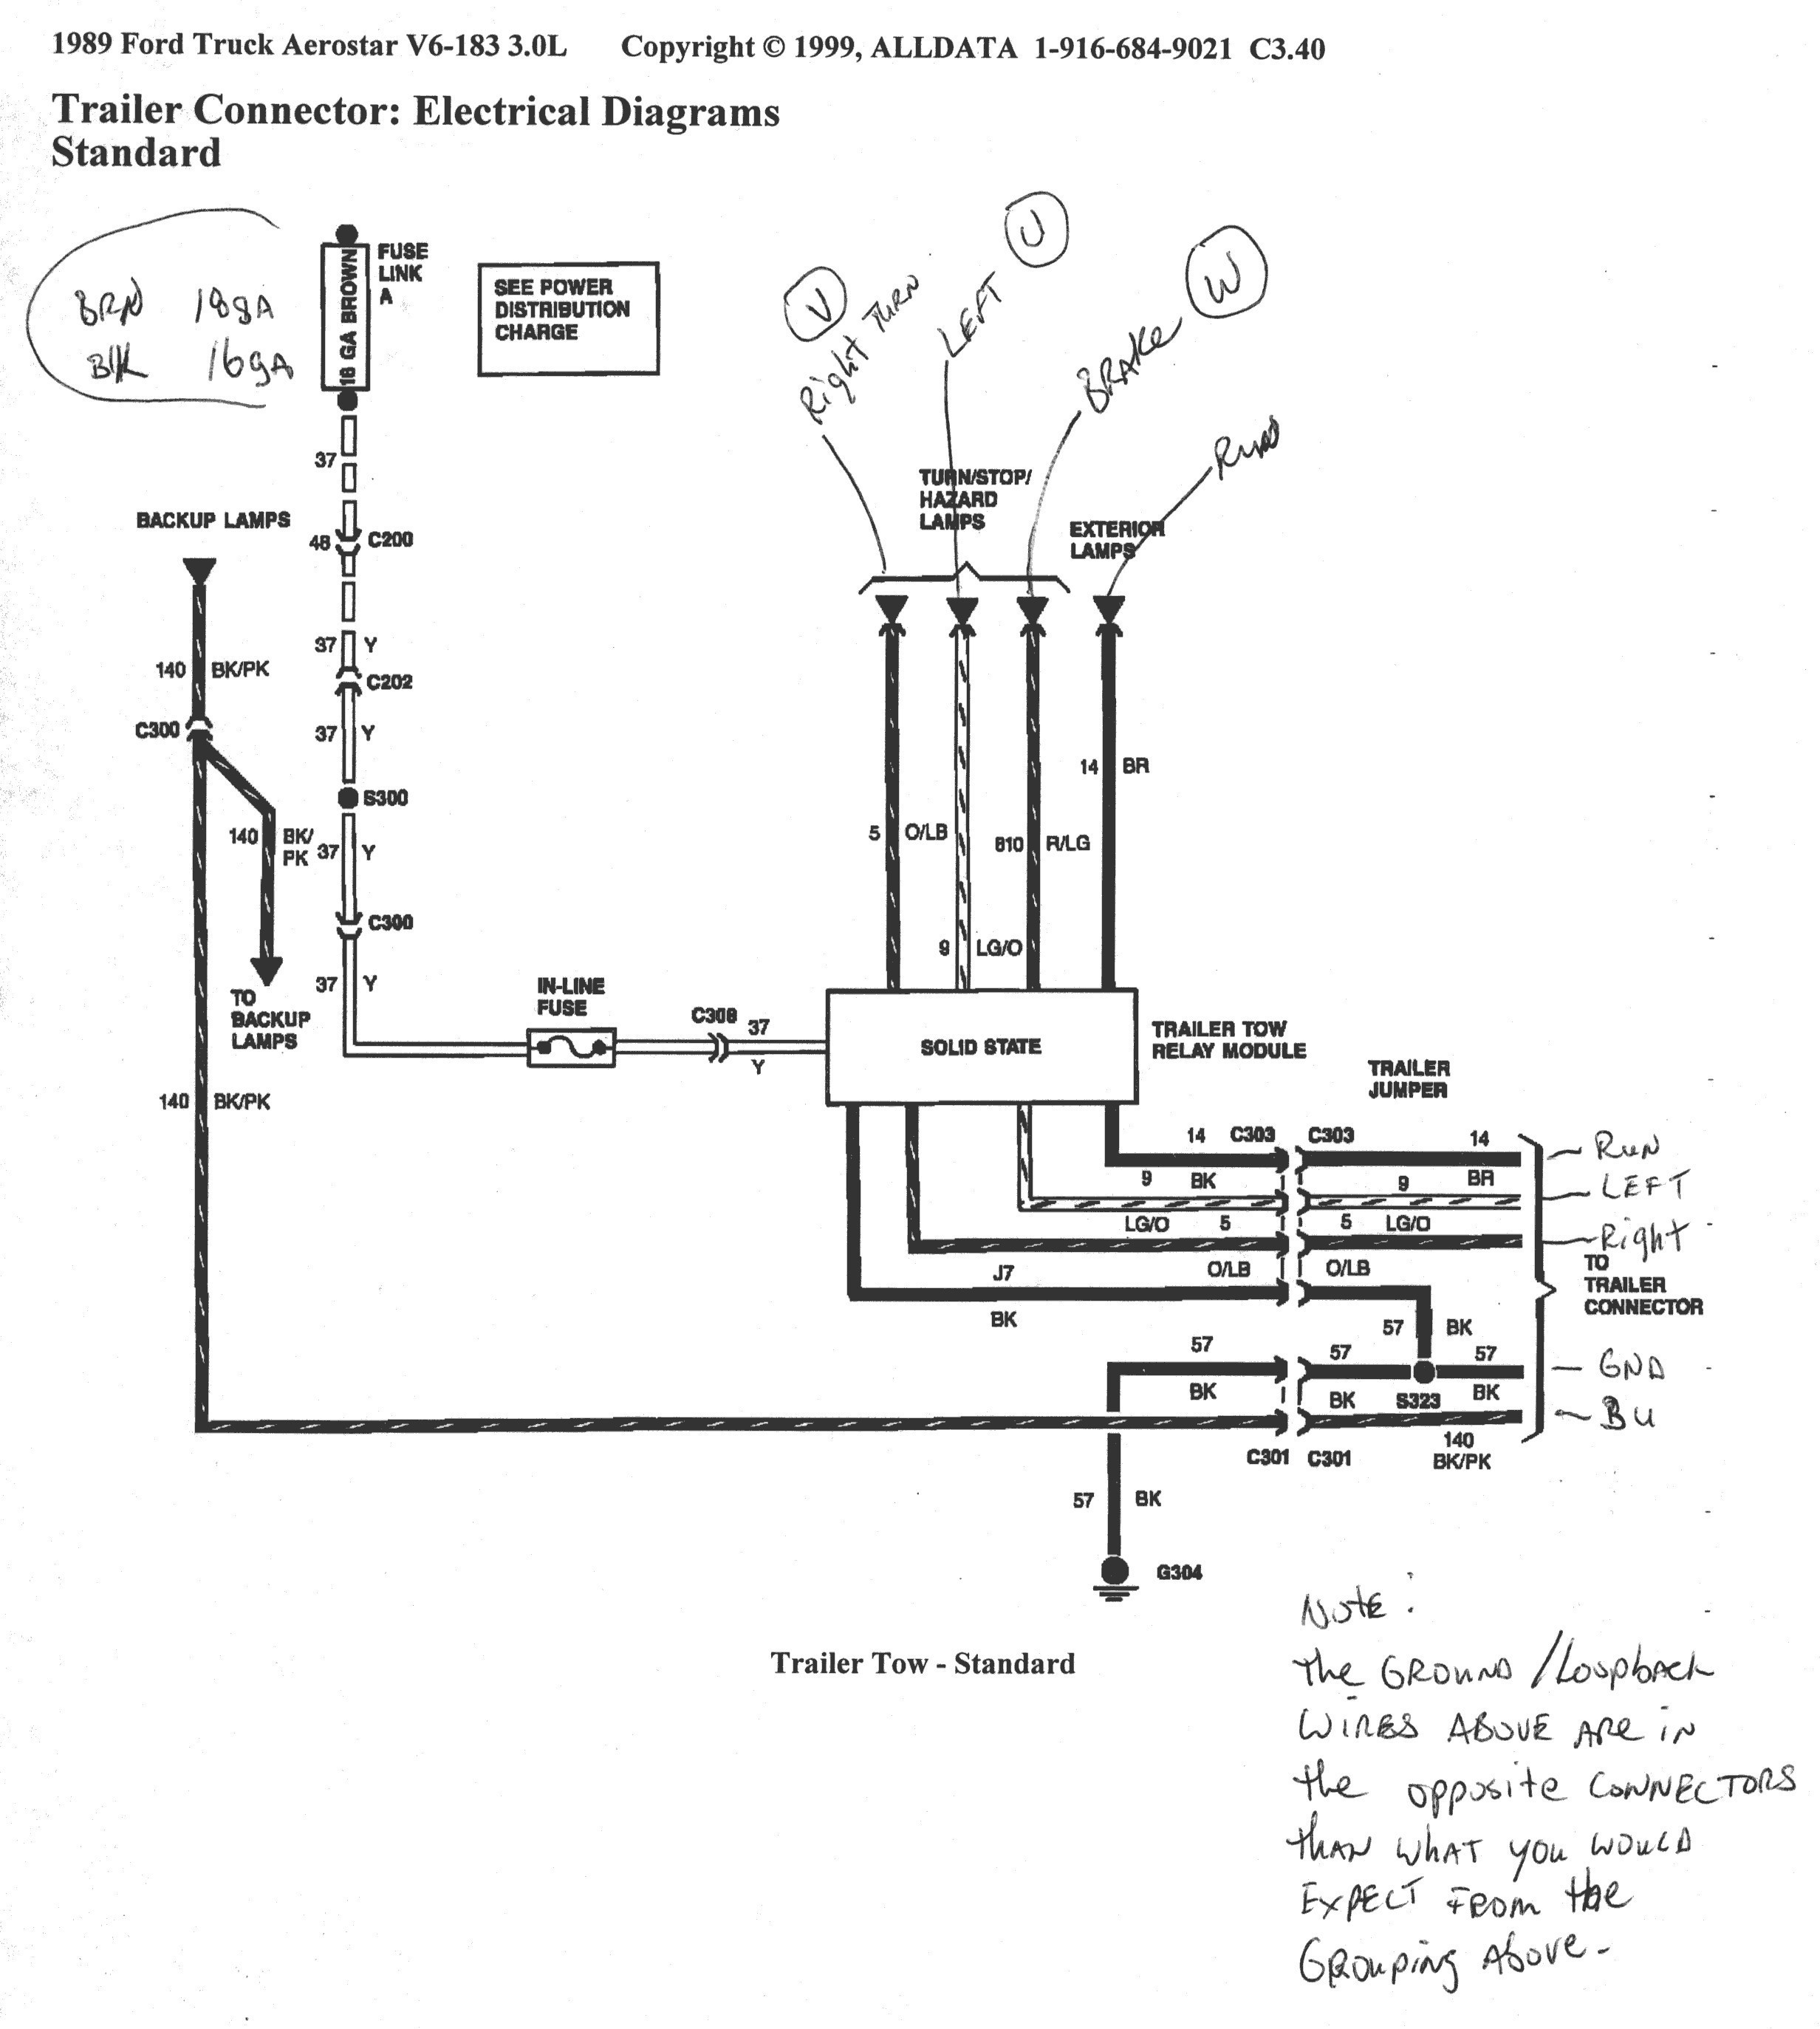 1997 ford f150 headlight switch wiring diagram audi a6 c6 abs best library rh 97 radiodiariodelhuila co gm